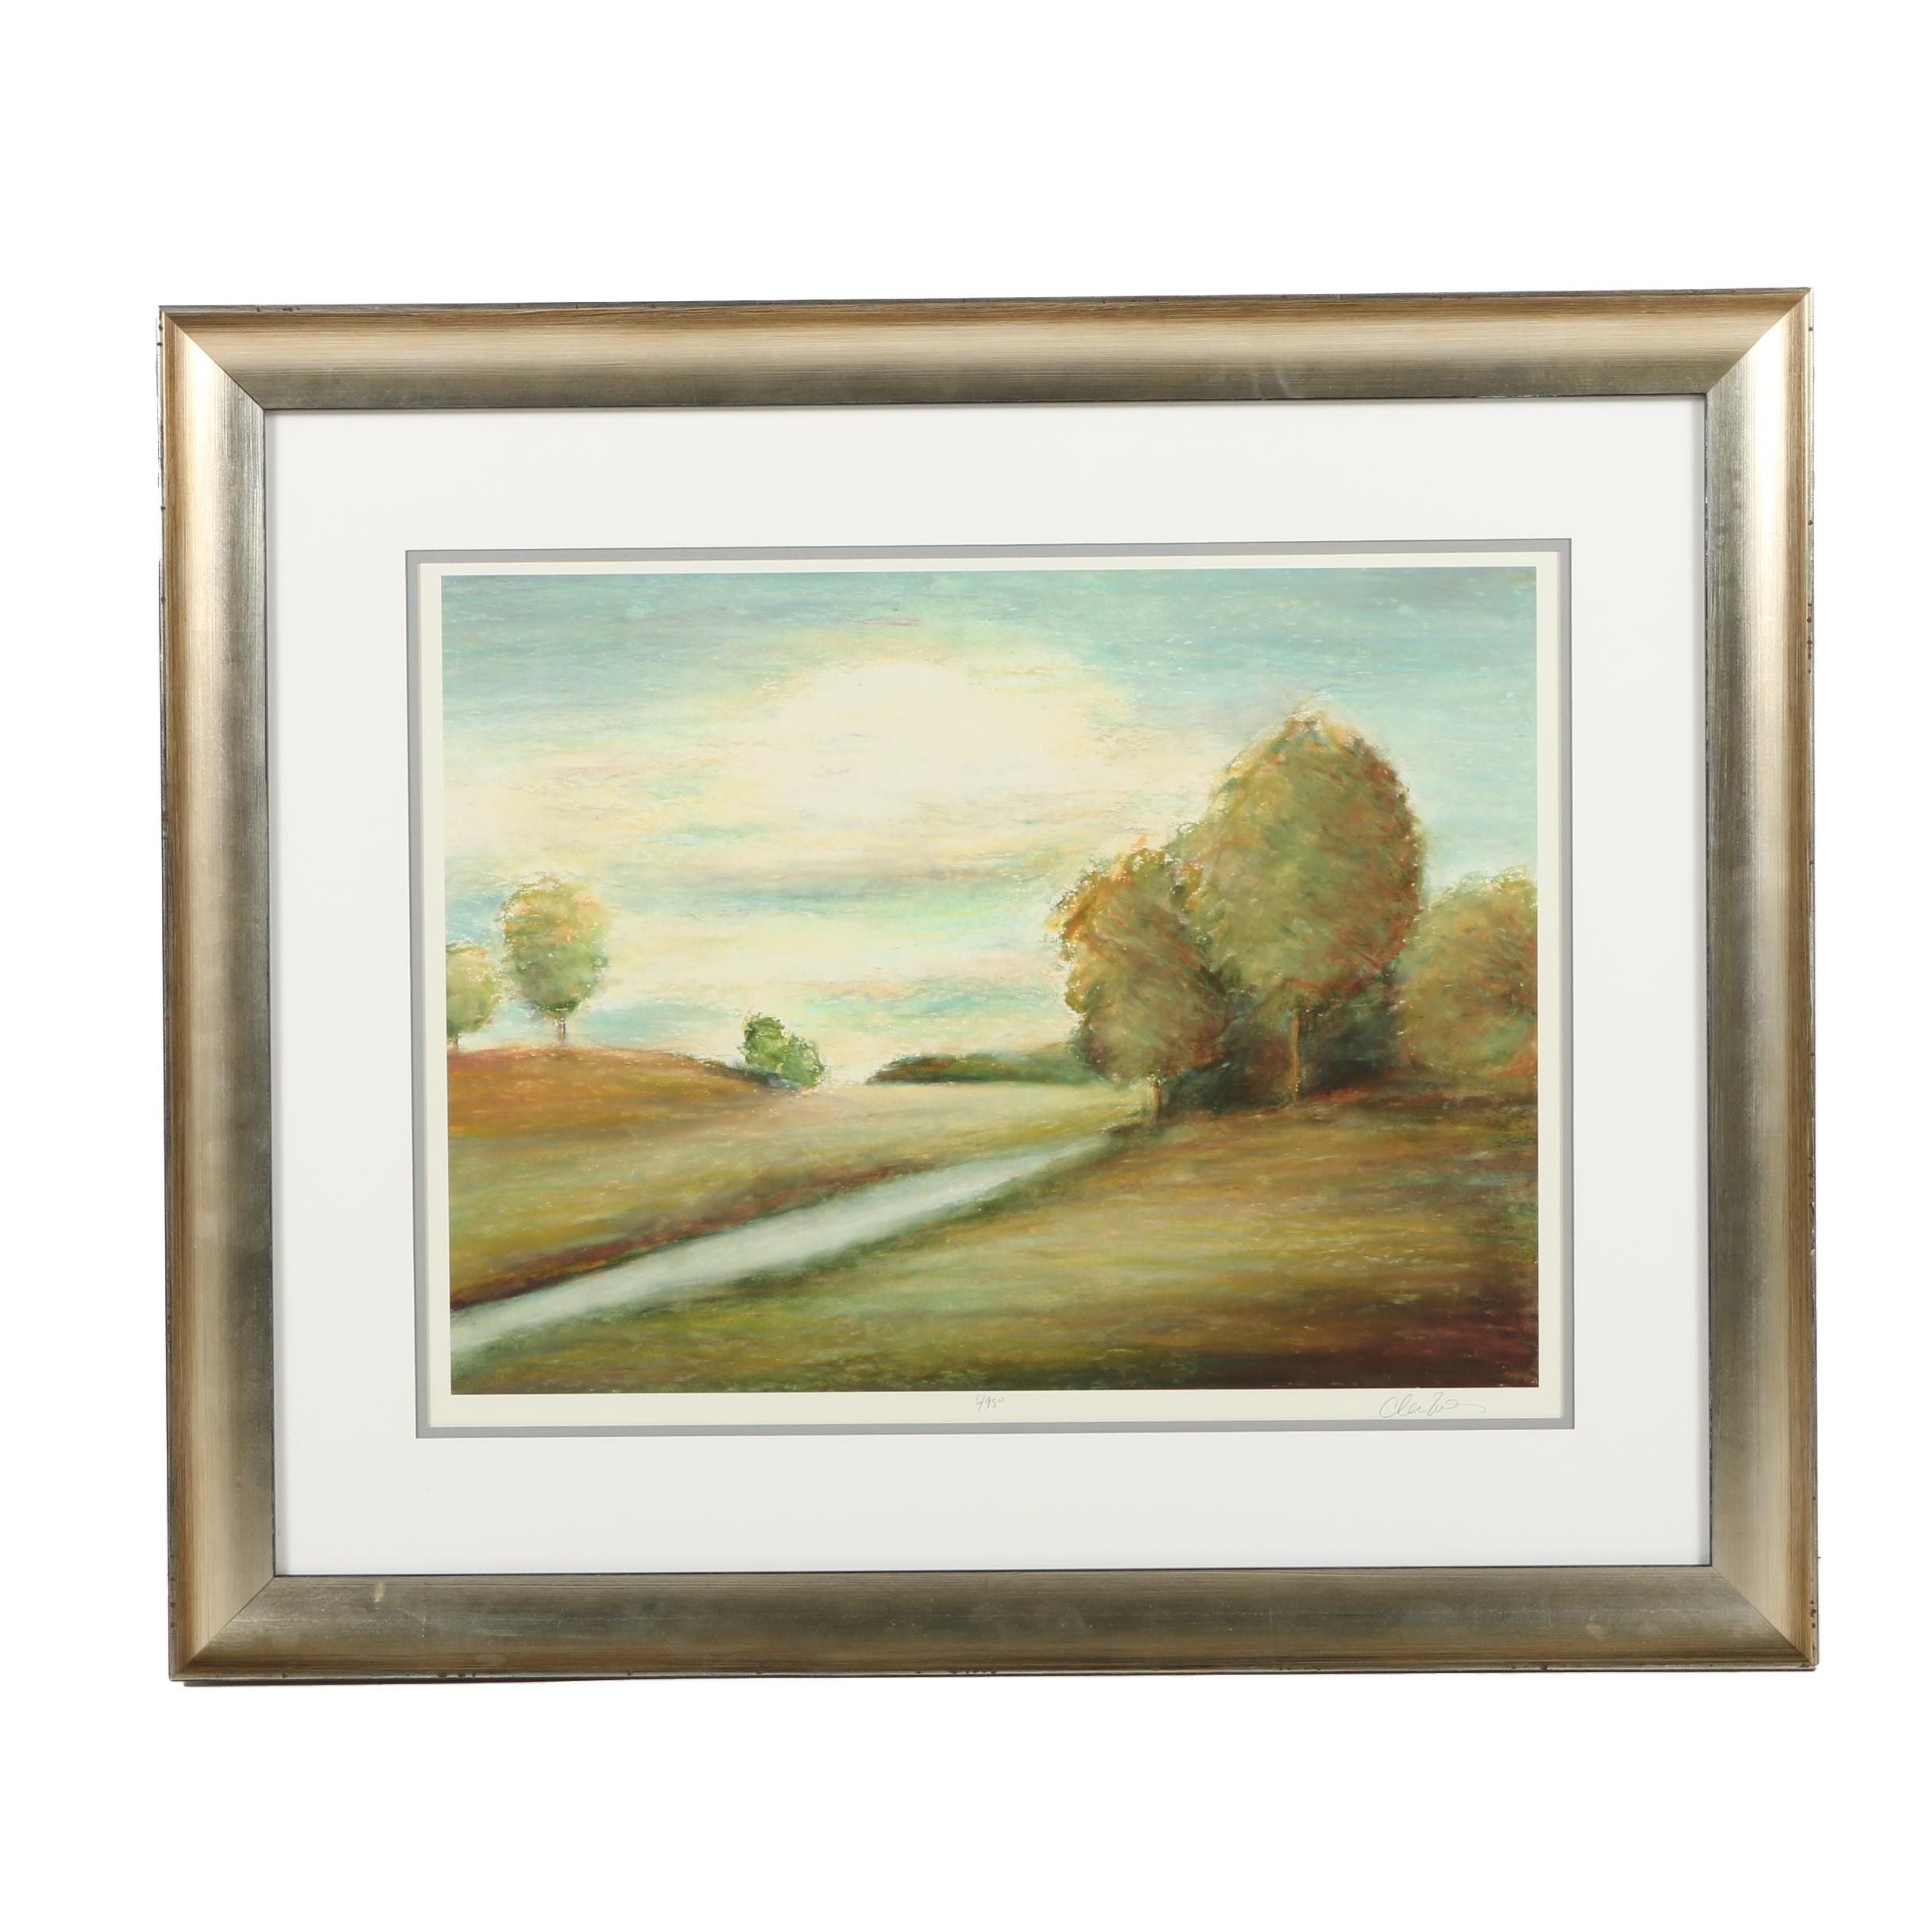 Limited Edition Giclée of a Country Field